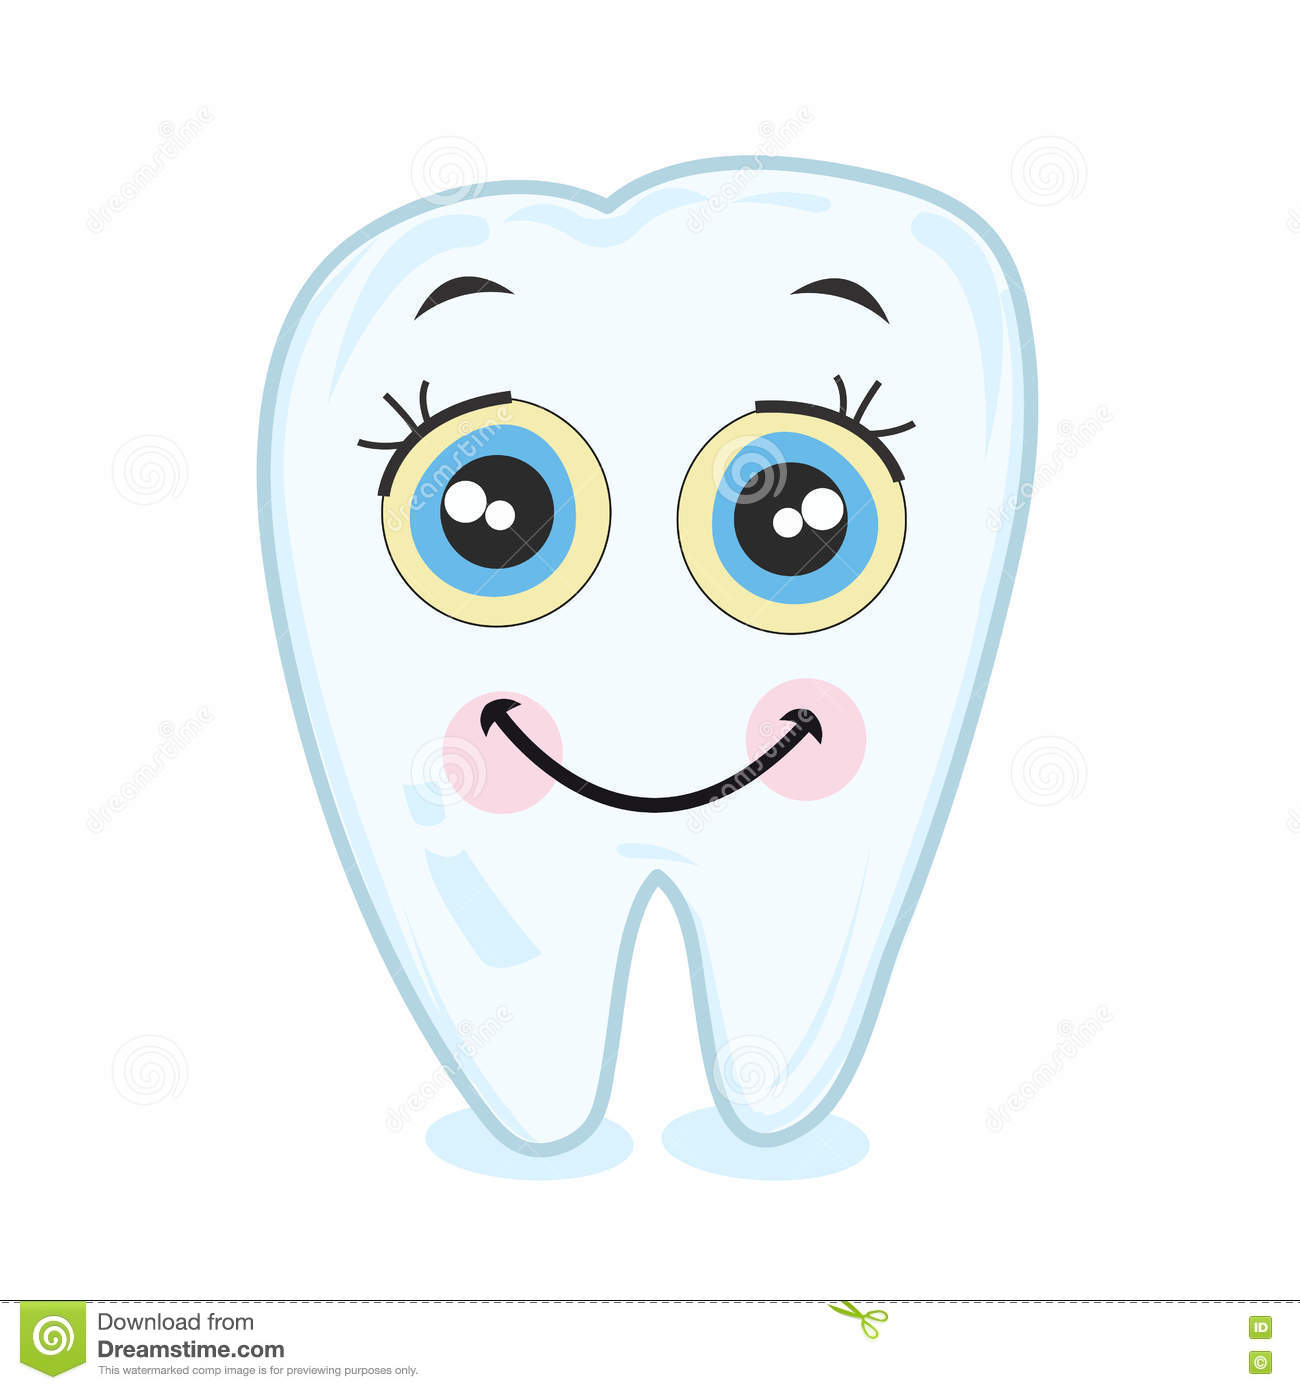 Teeth smiling coloring page